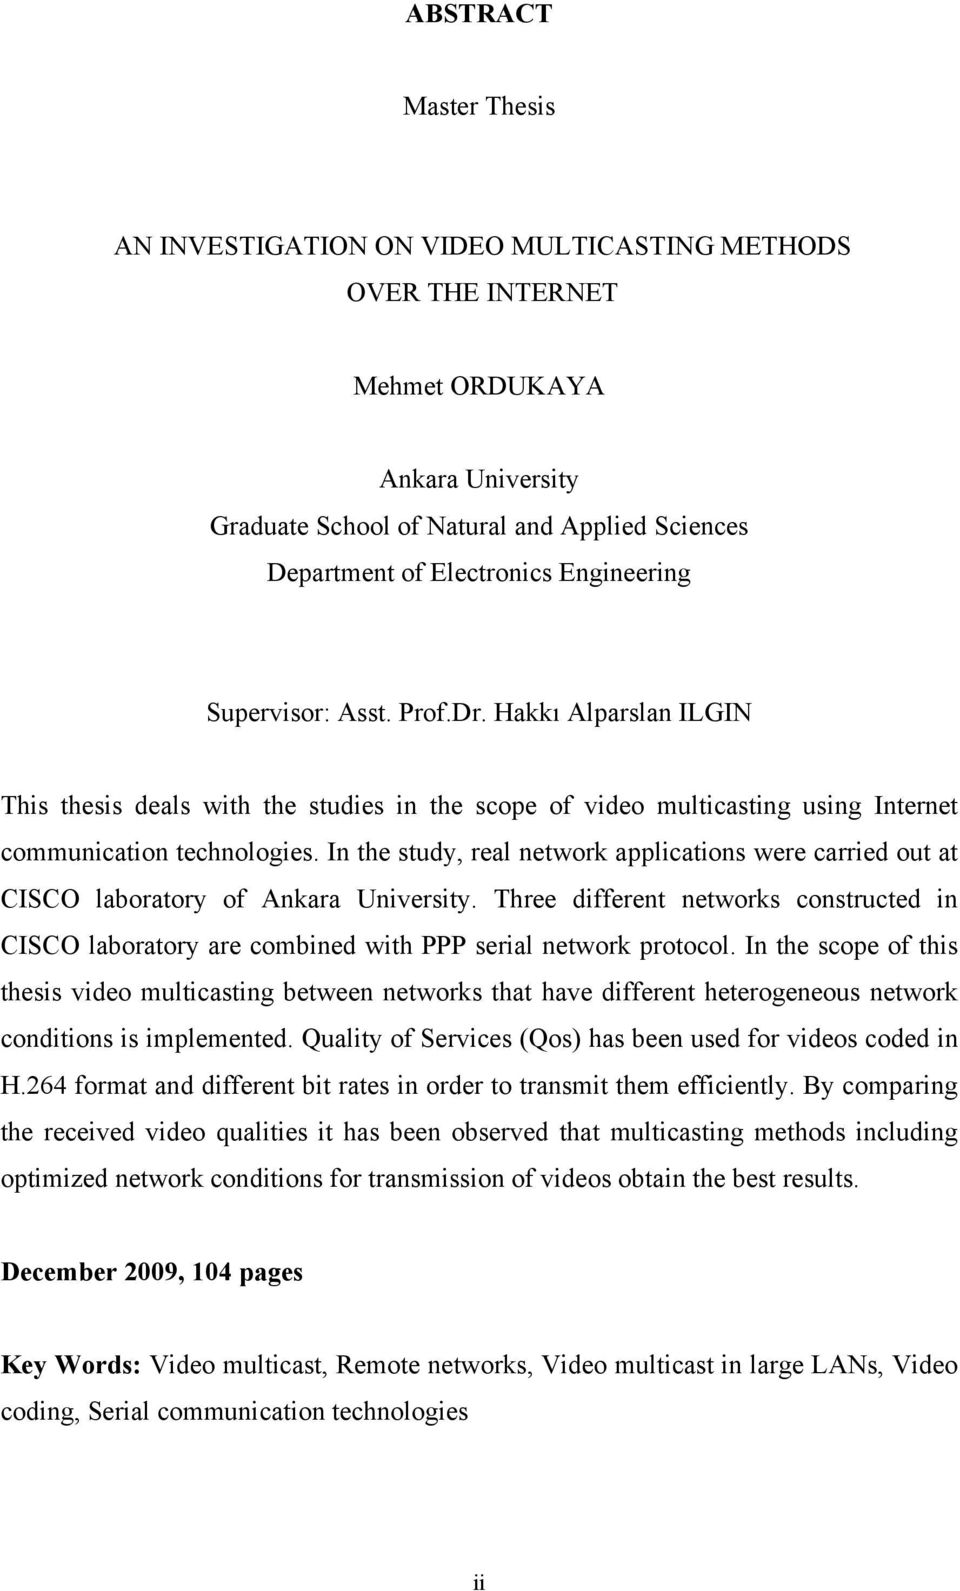 In the study, real network applications were carried out at CISCO laboratory of Ankara University.